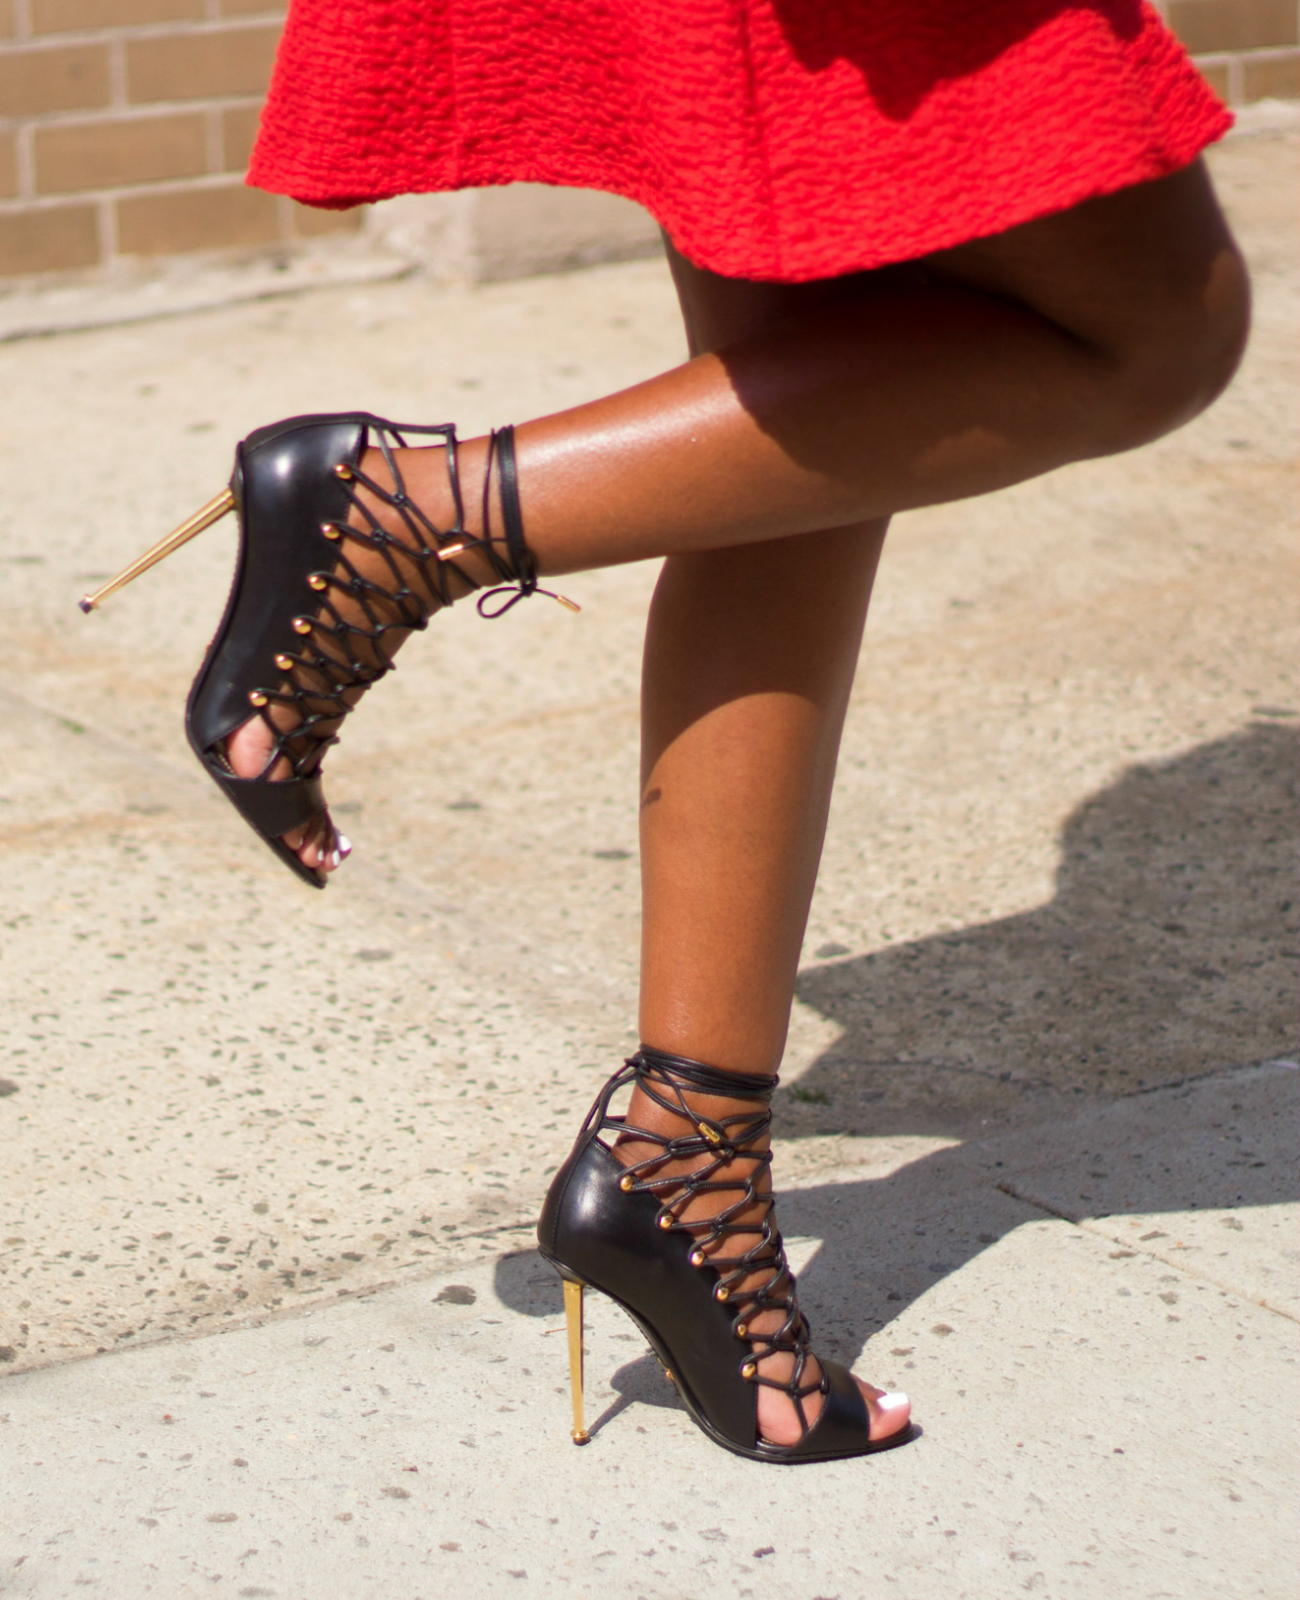 Tom Ford Lace Up Heels - Is Heel